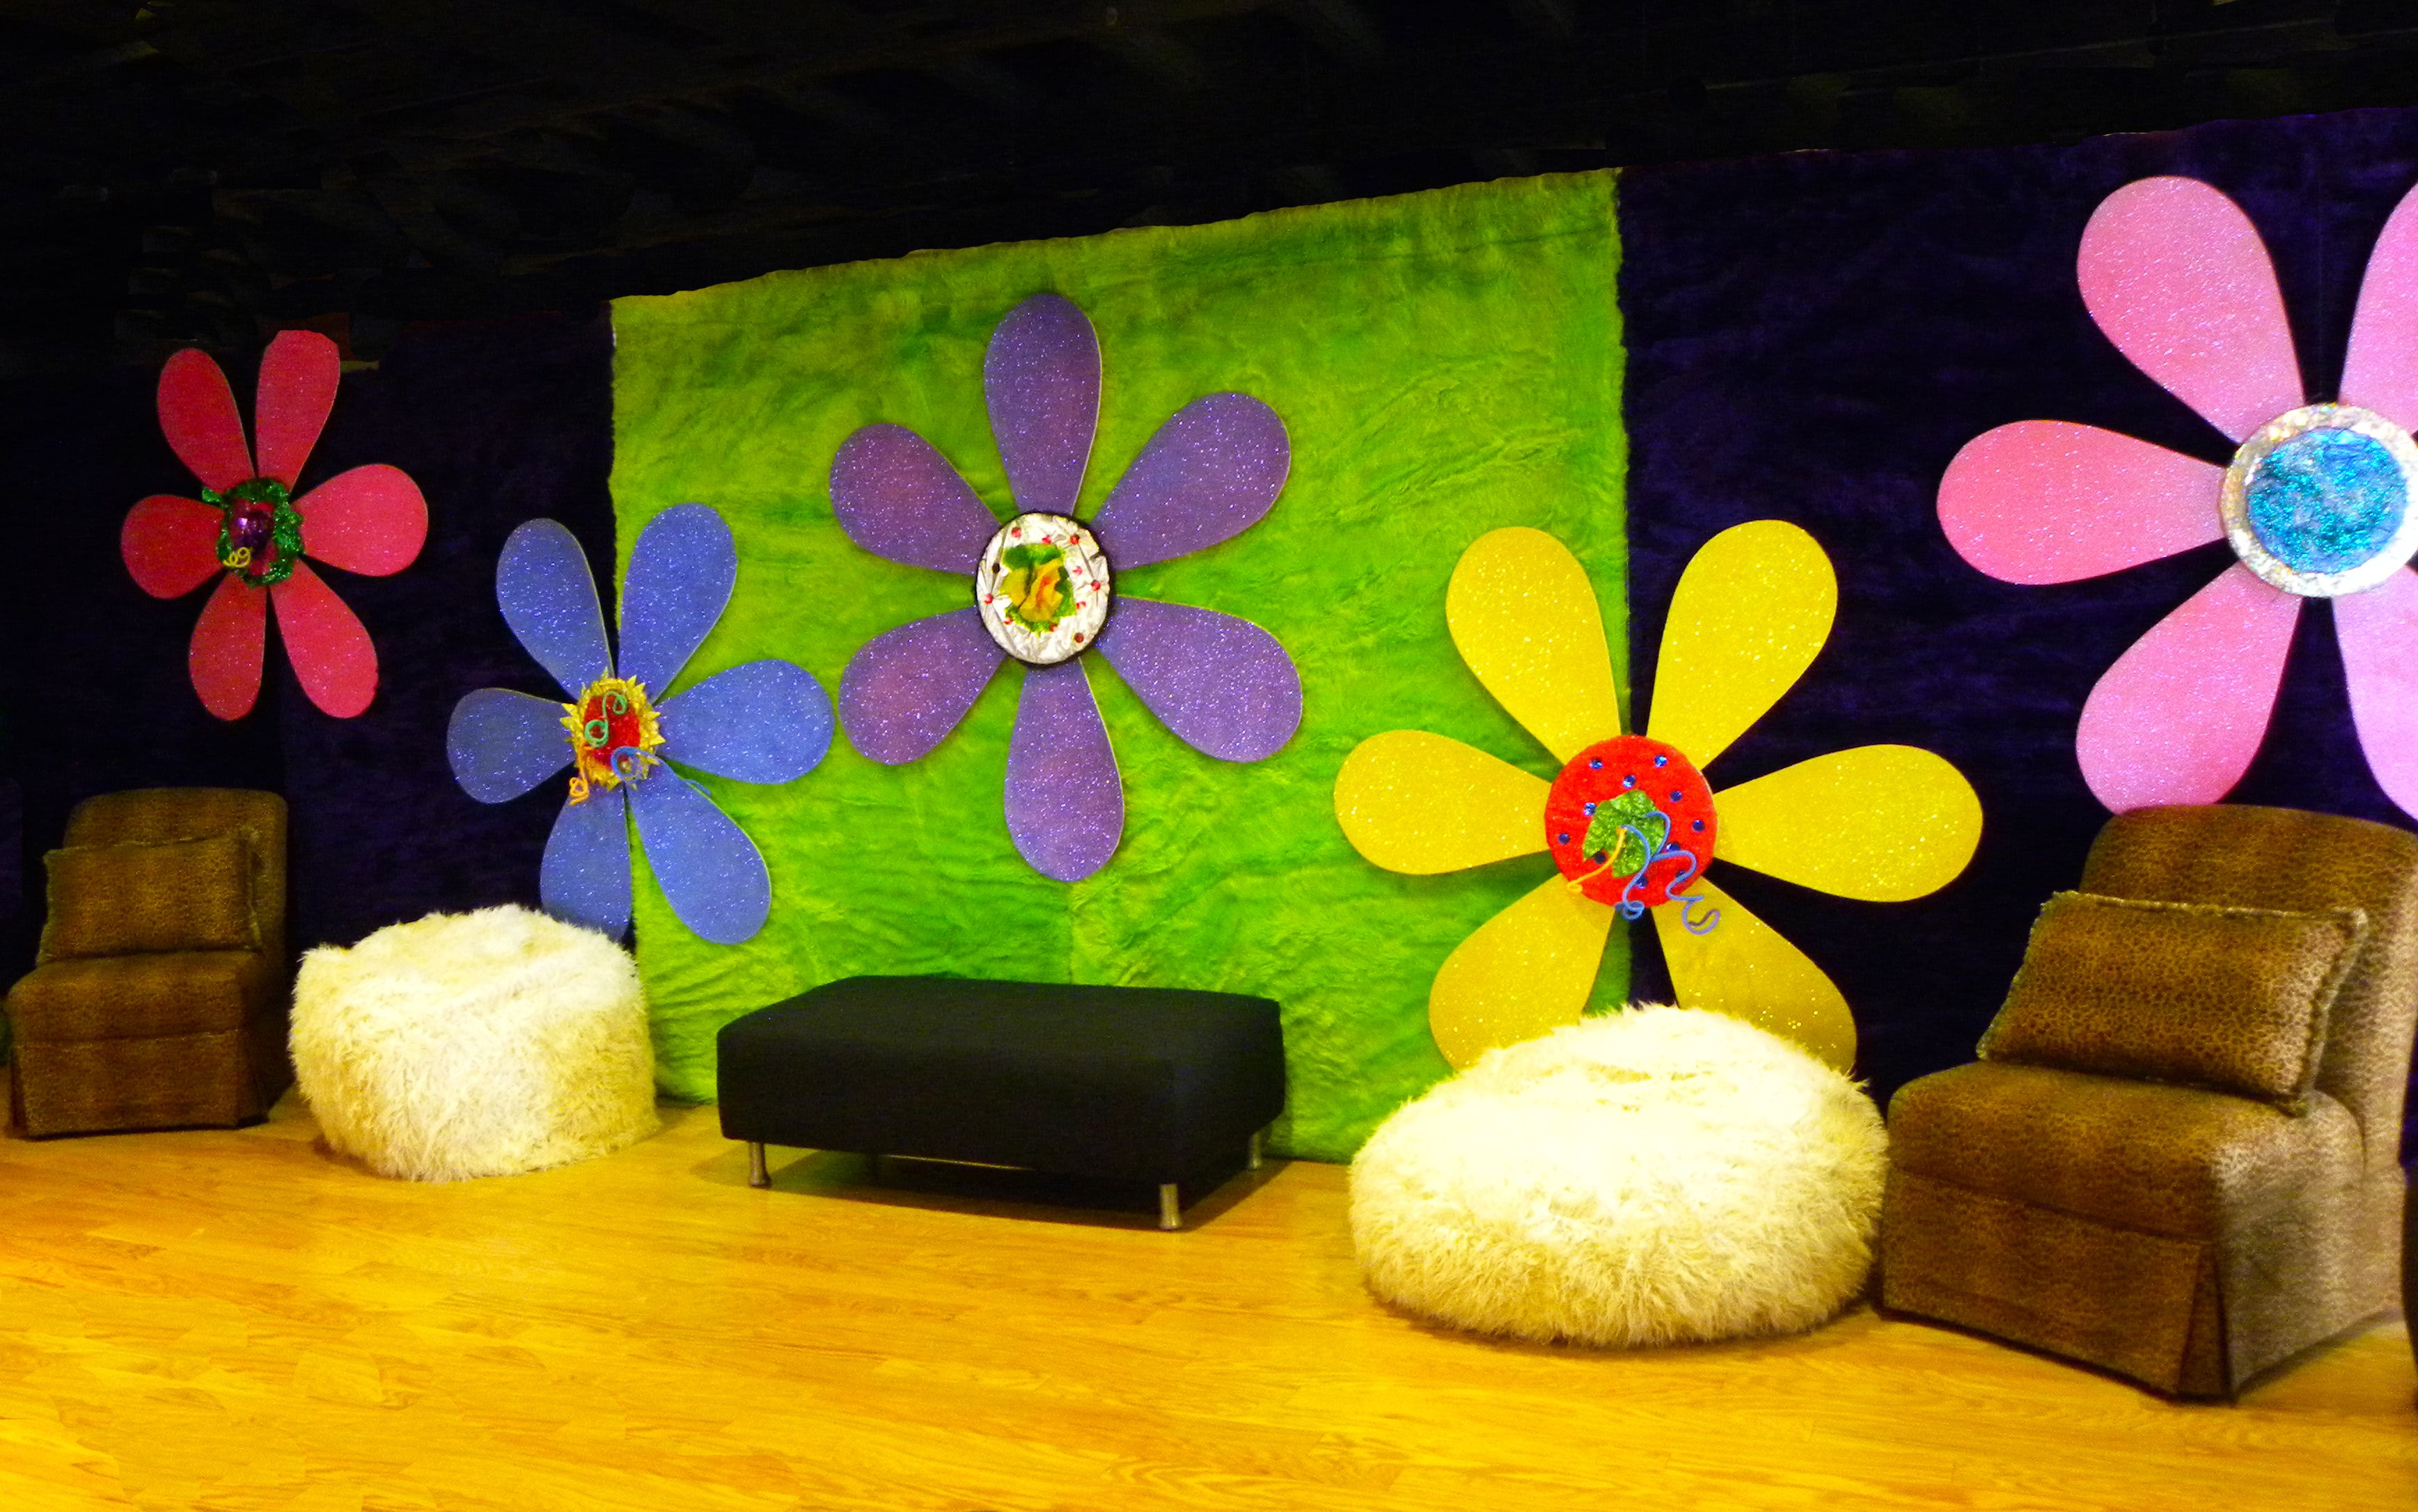 Groovy flower backdrop with retro seating 70 39 s party for 70s decoration ideas